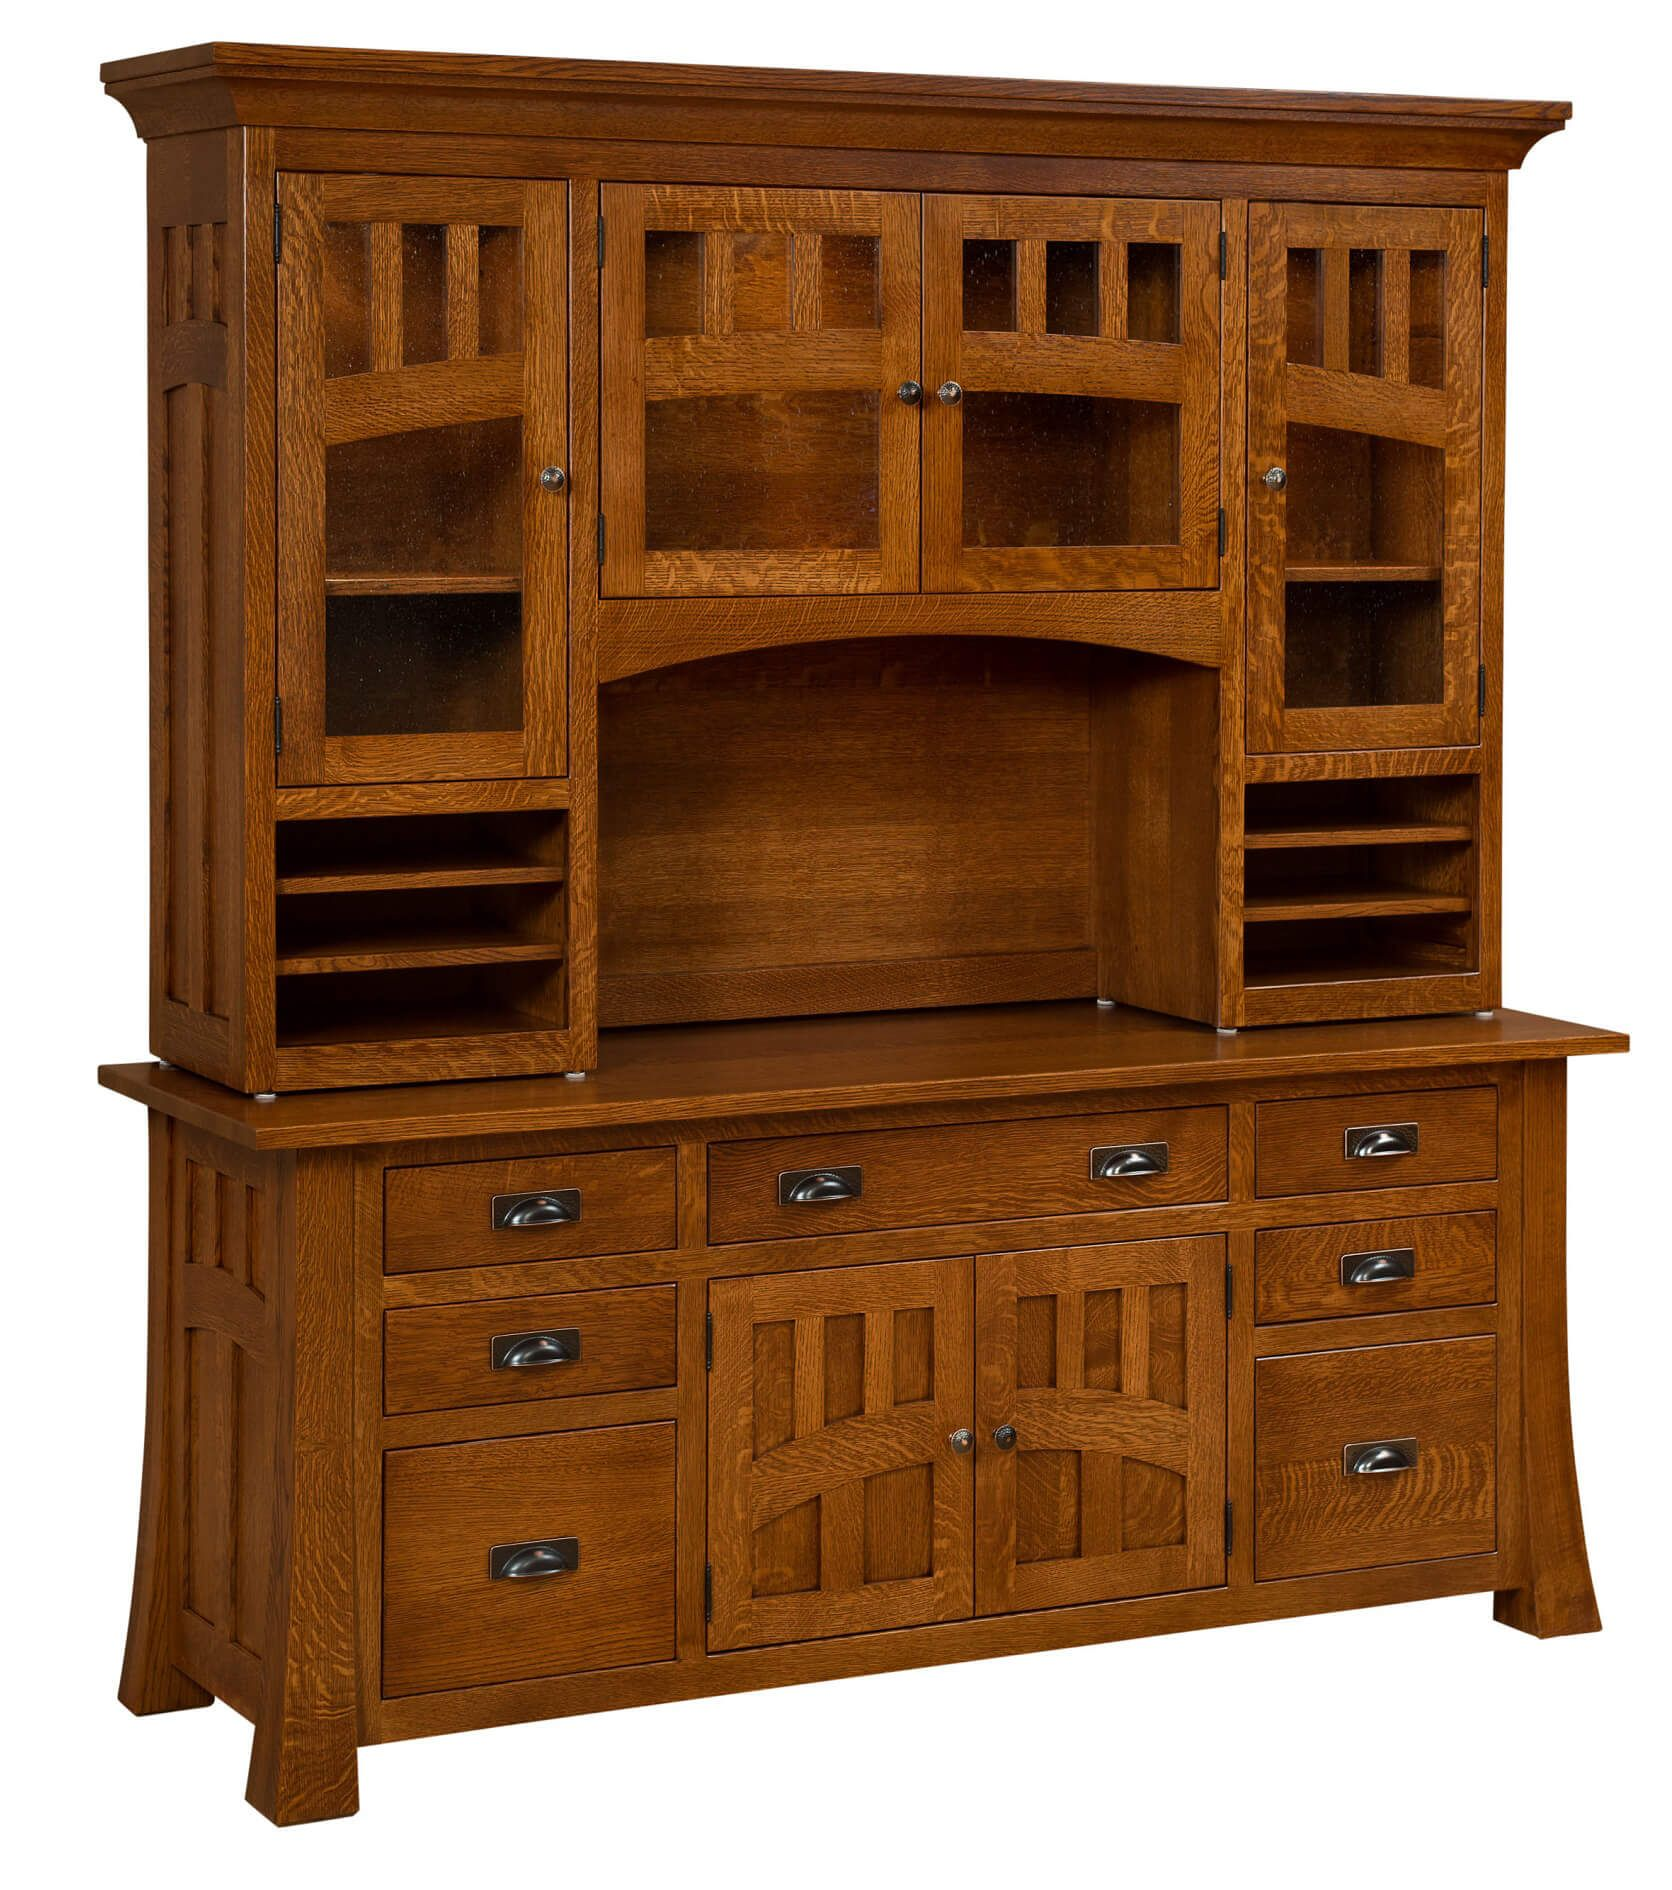 Mission Canyon Office Storage Credenza with Hutch